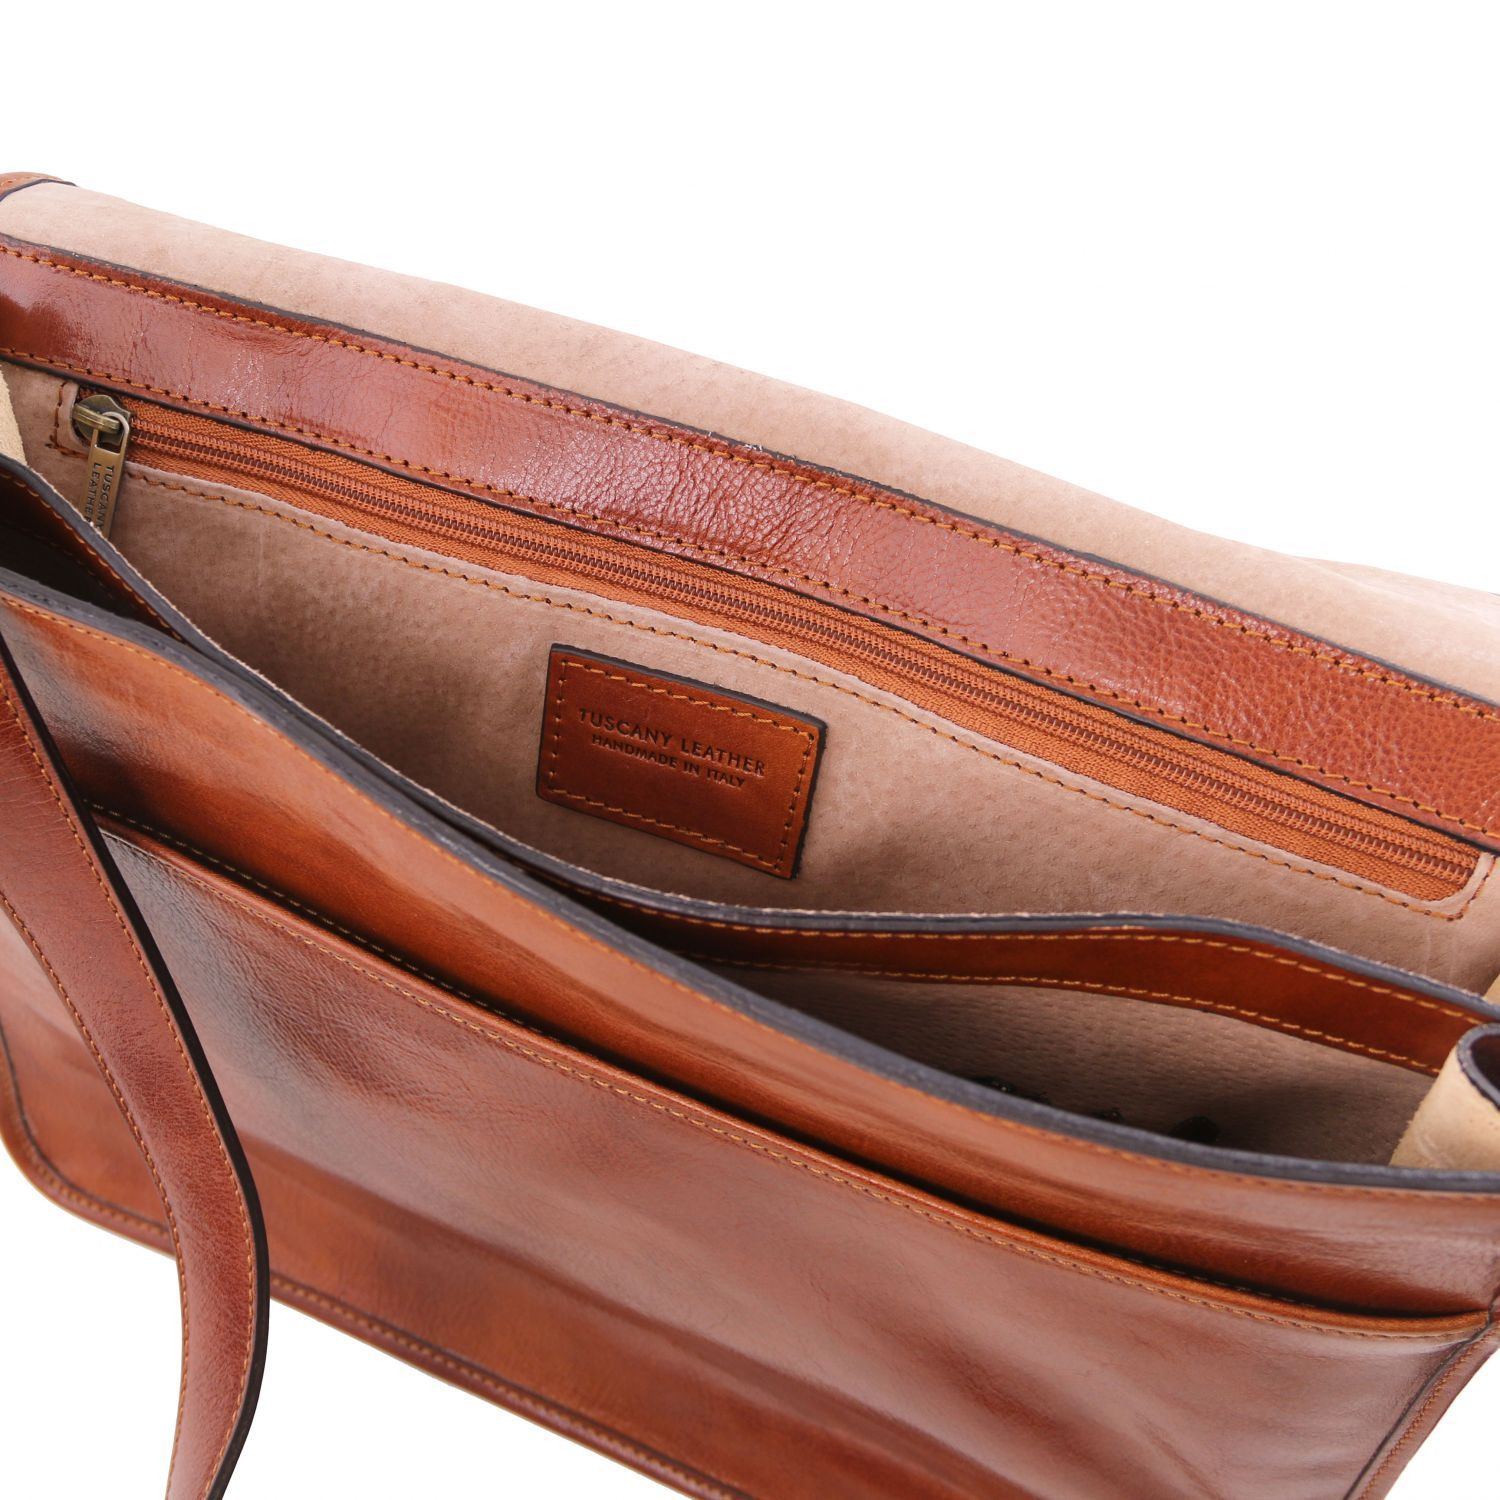 TL Messenger - Two compartments leather shoulder bag - Large size (TL141254) - Leather bags for men | DILUSSOBAGS